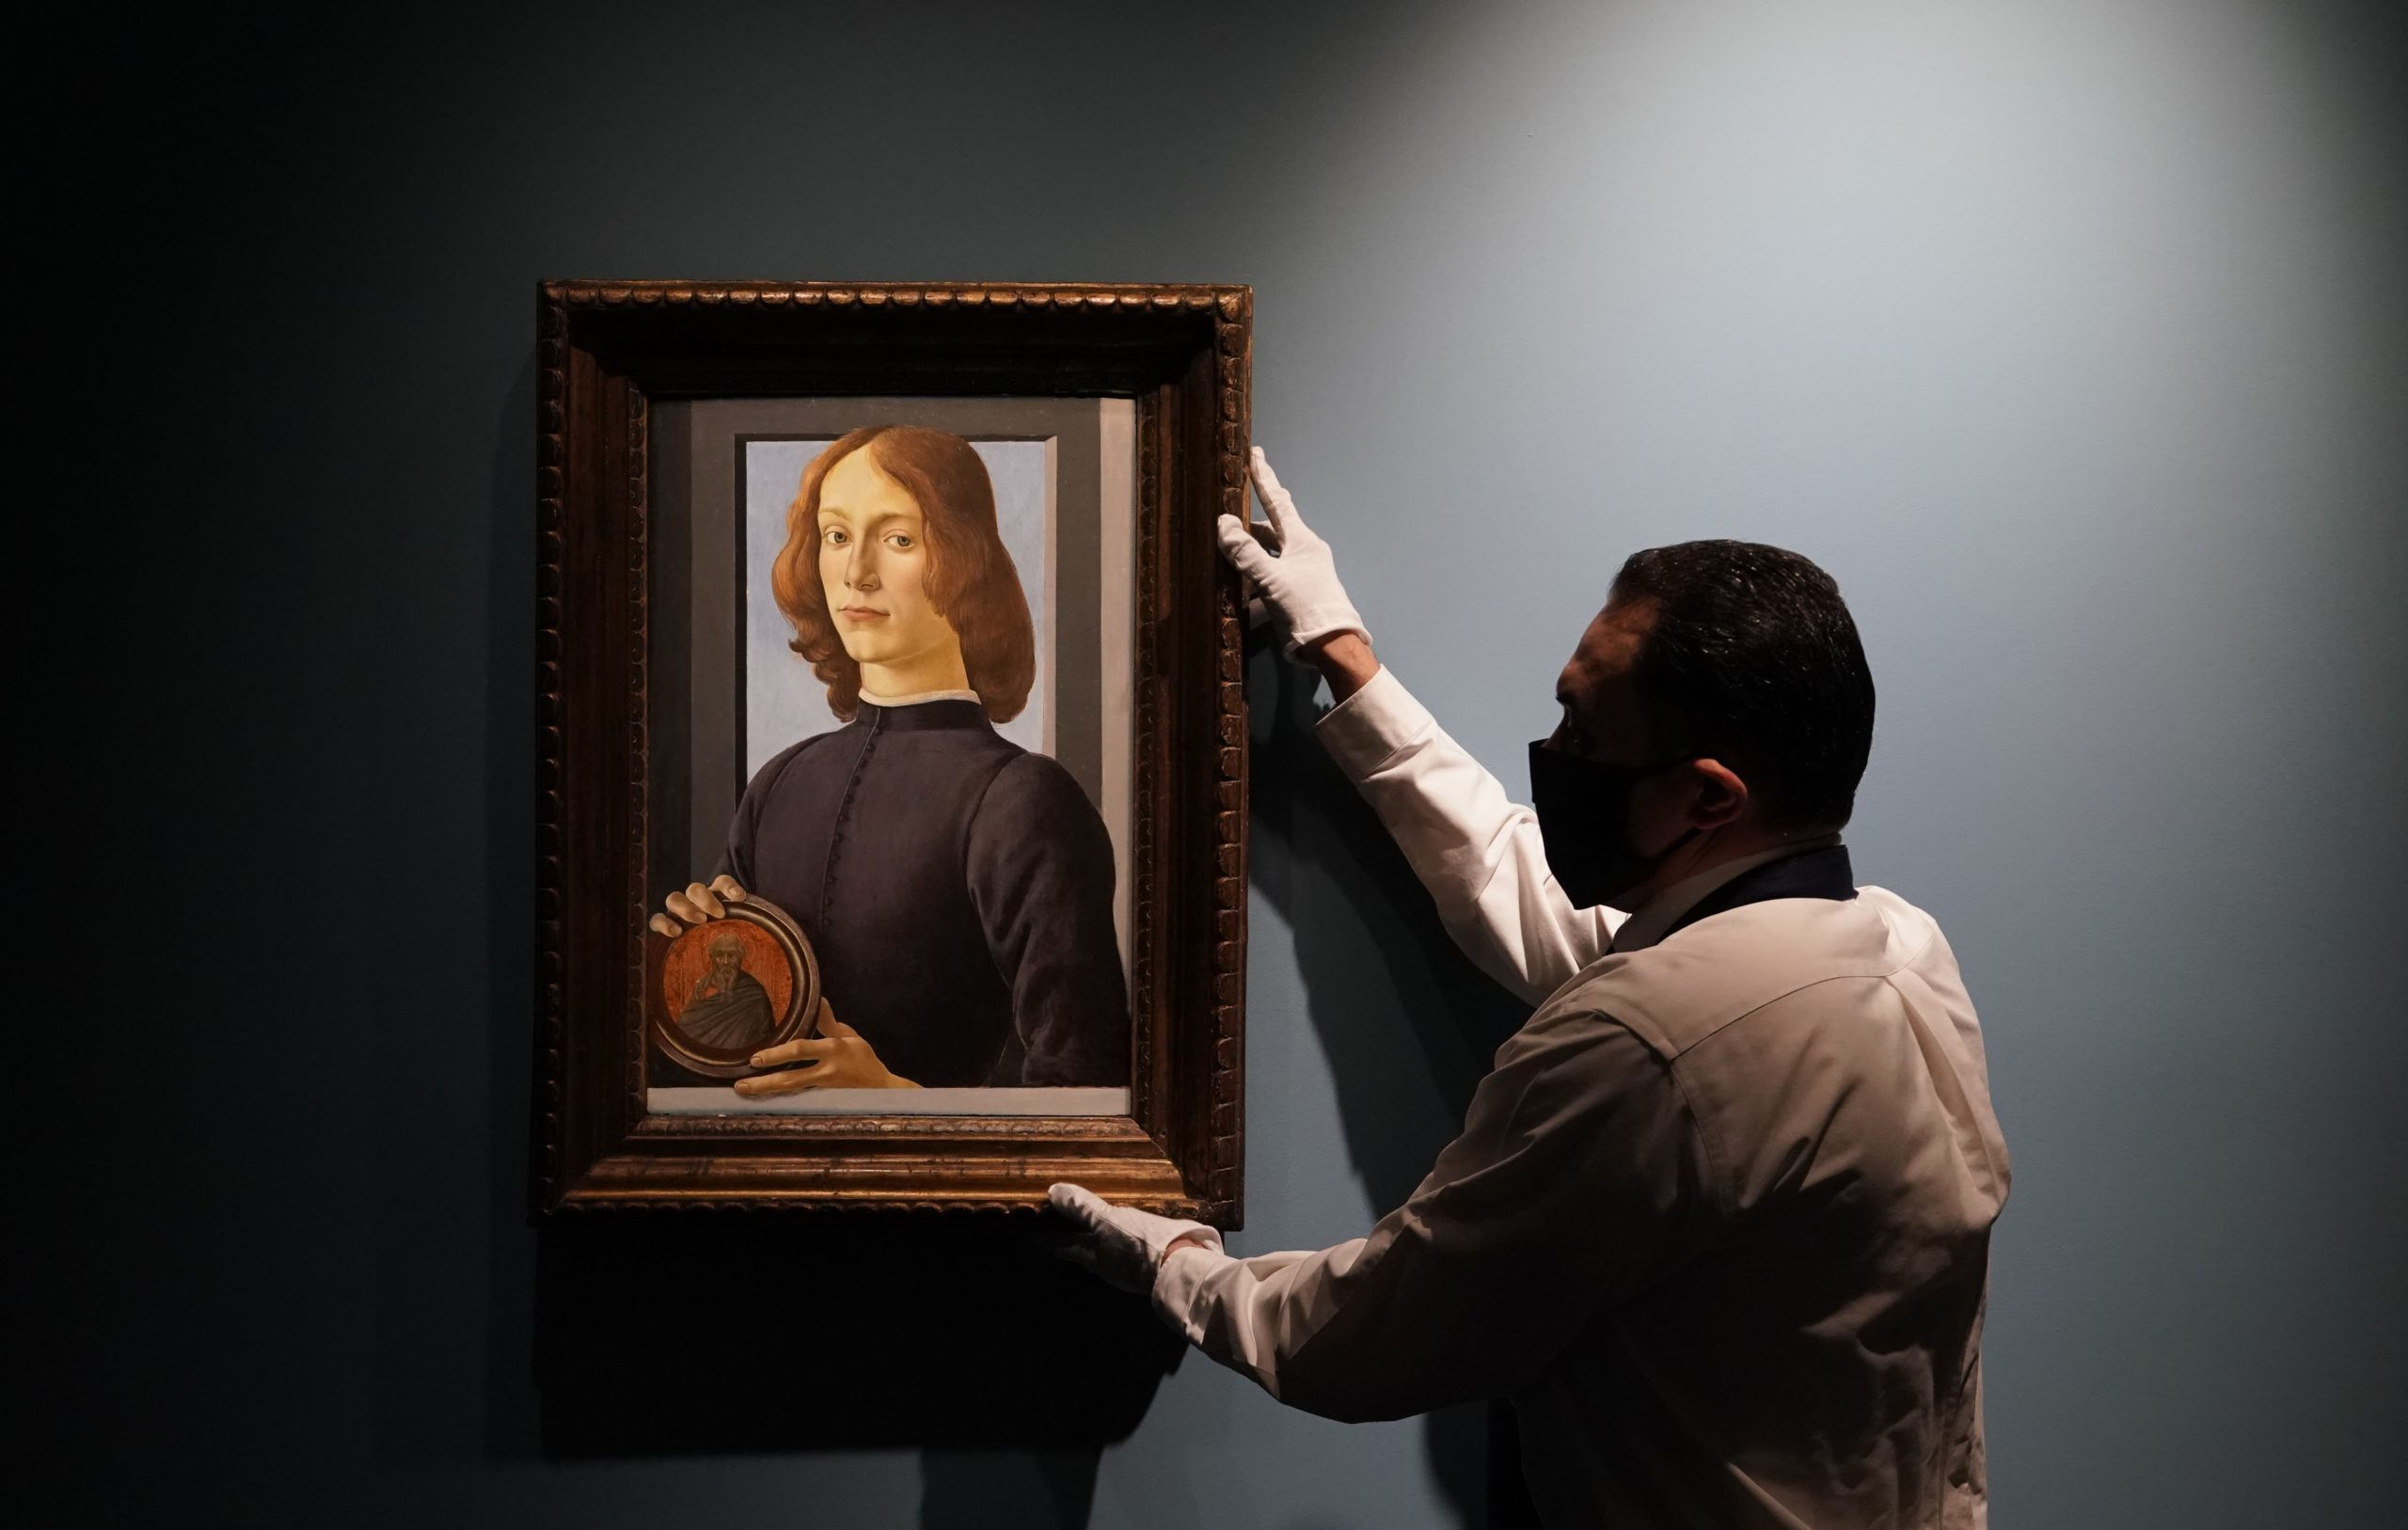 Da Vincis Painting of Jesus Mysteriously Vanishes in the